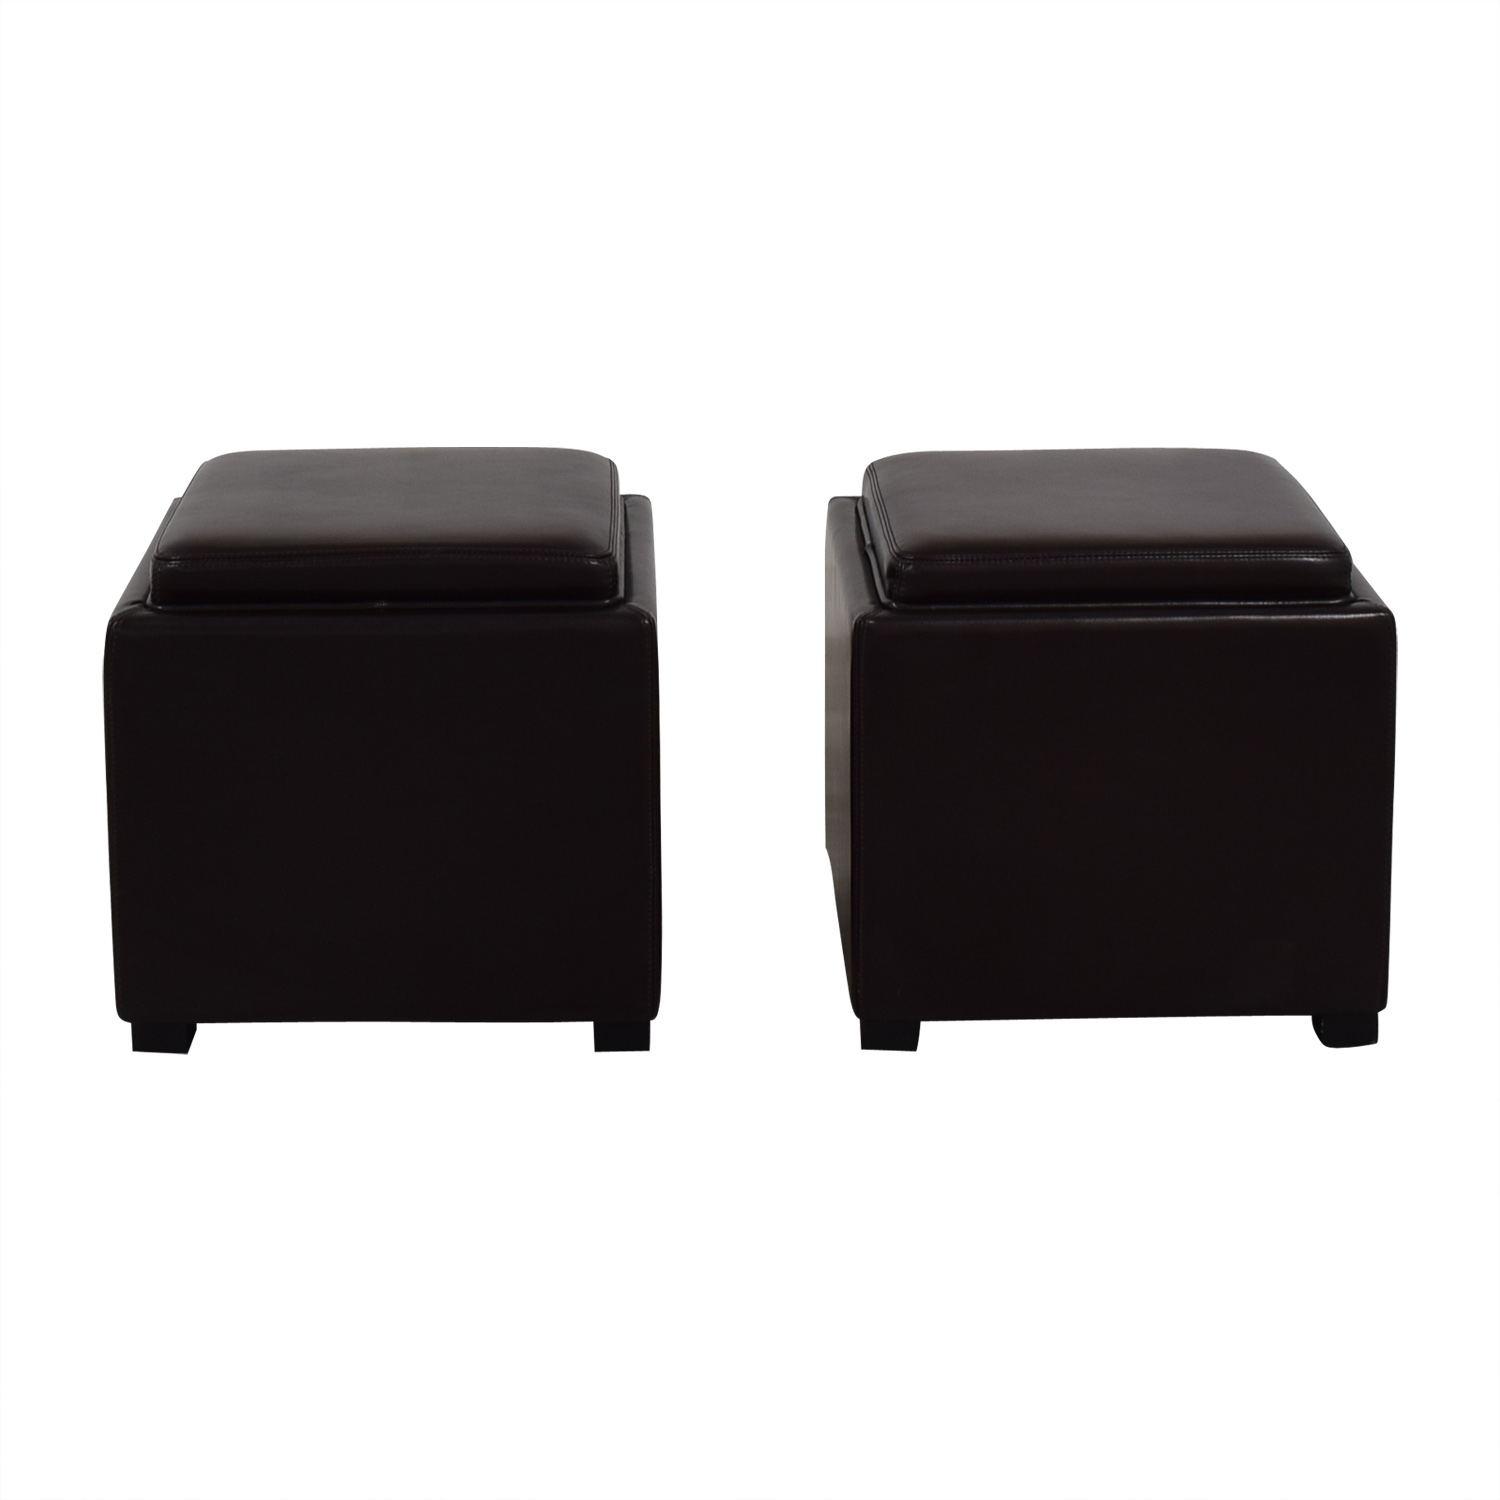 buy Crate & Barrel Brown Leather Storage Ottomans Crate & Barrel